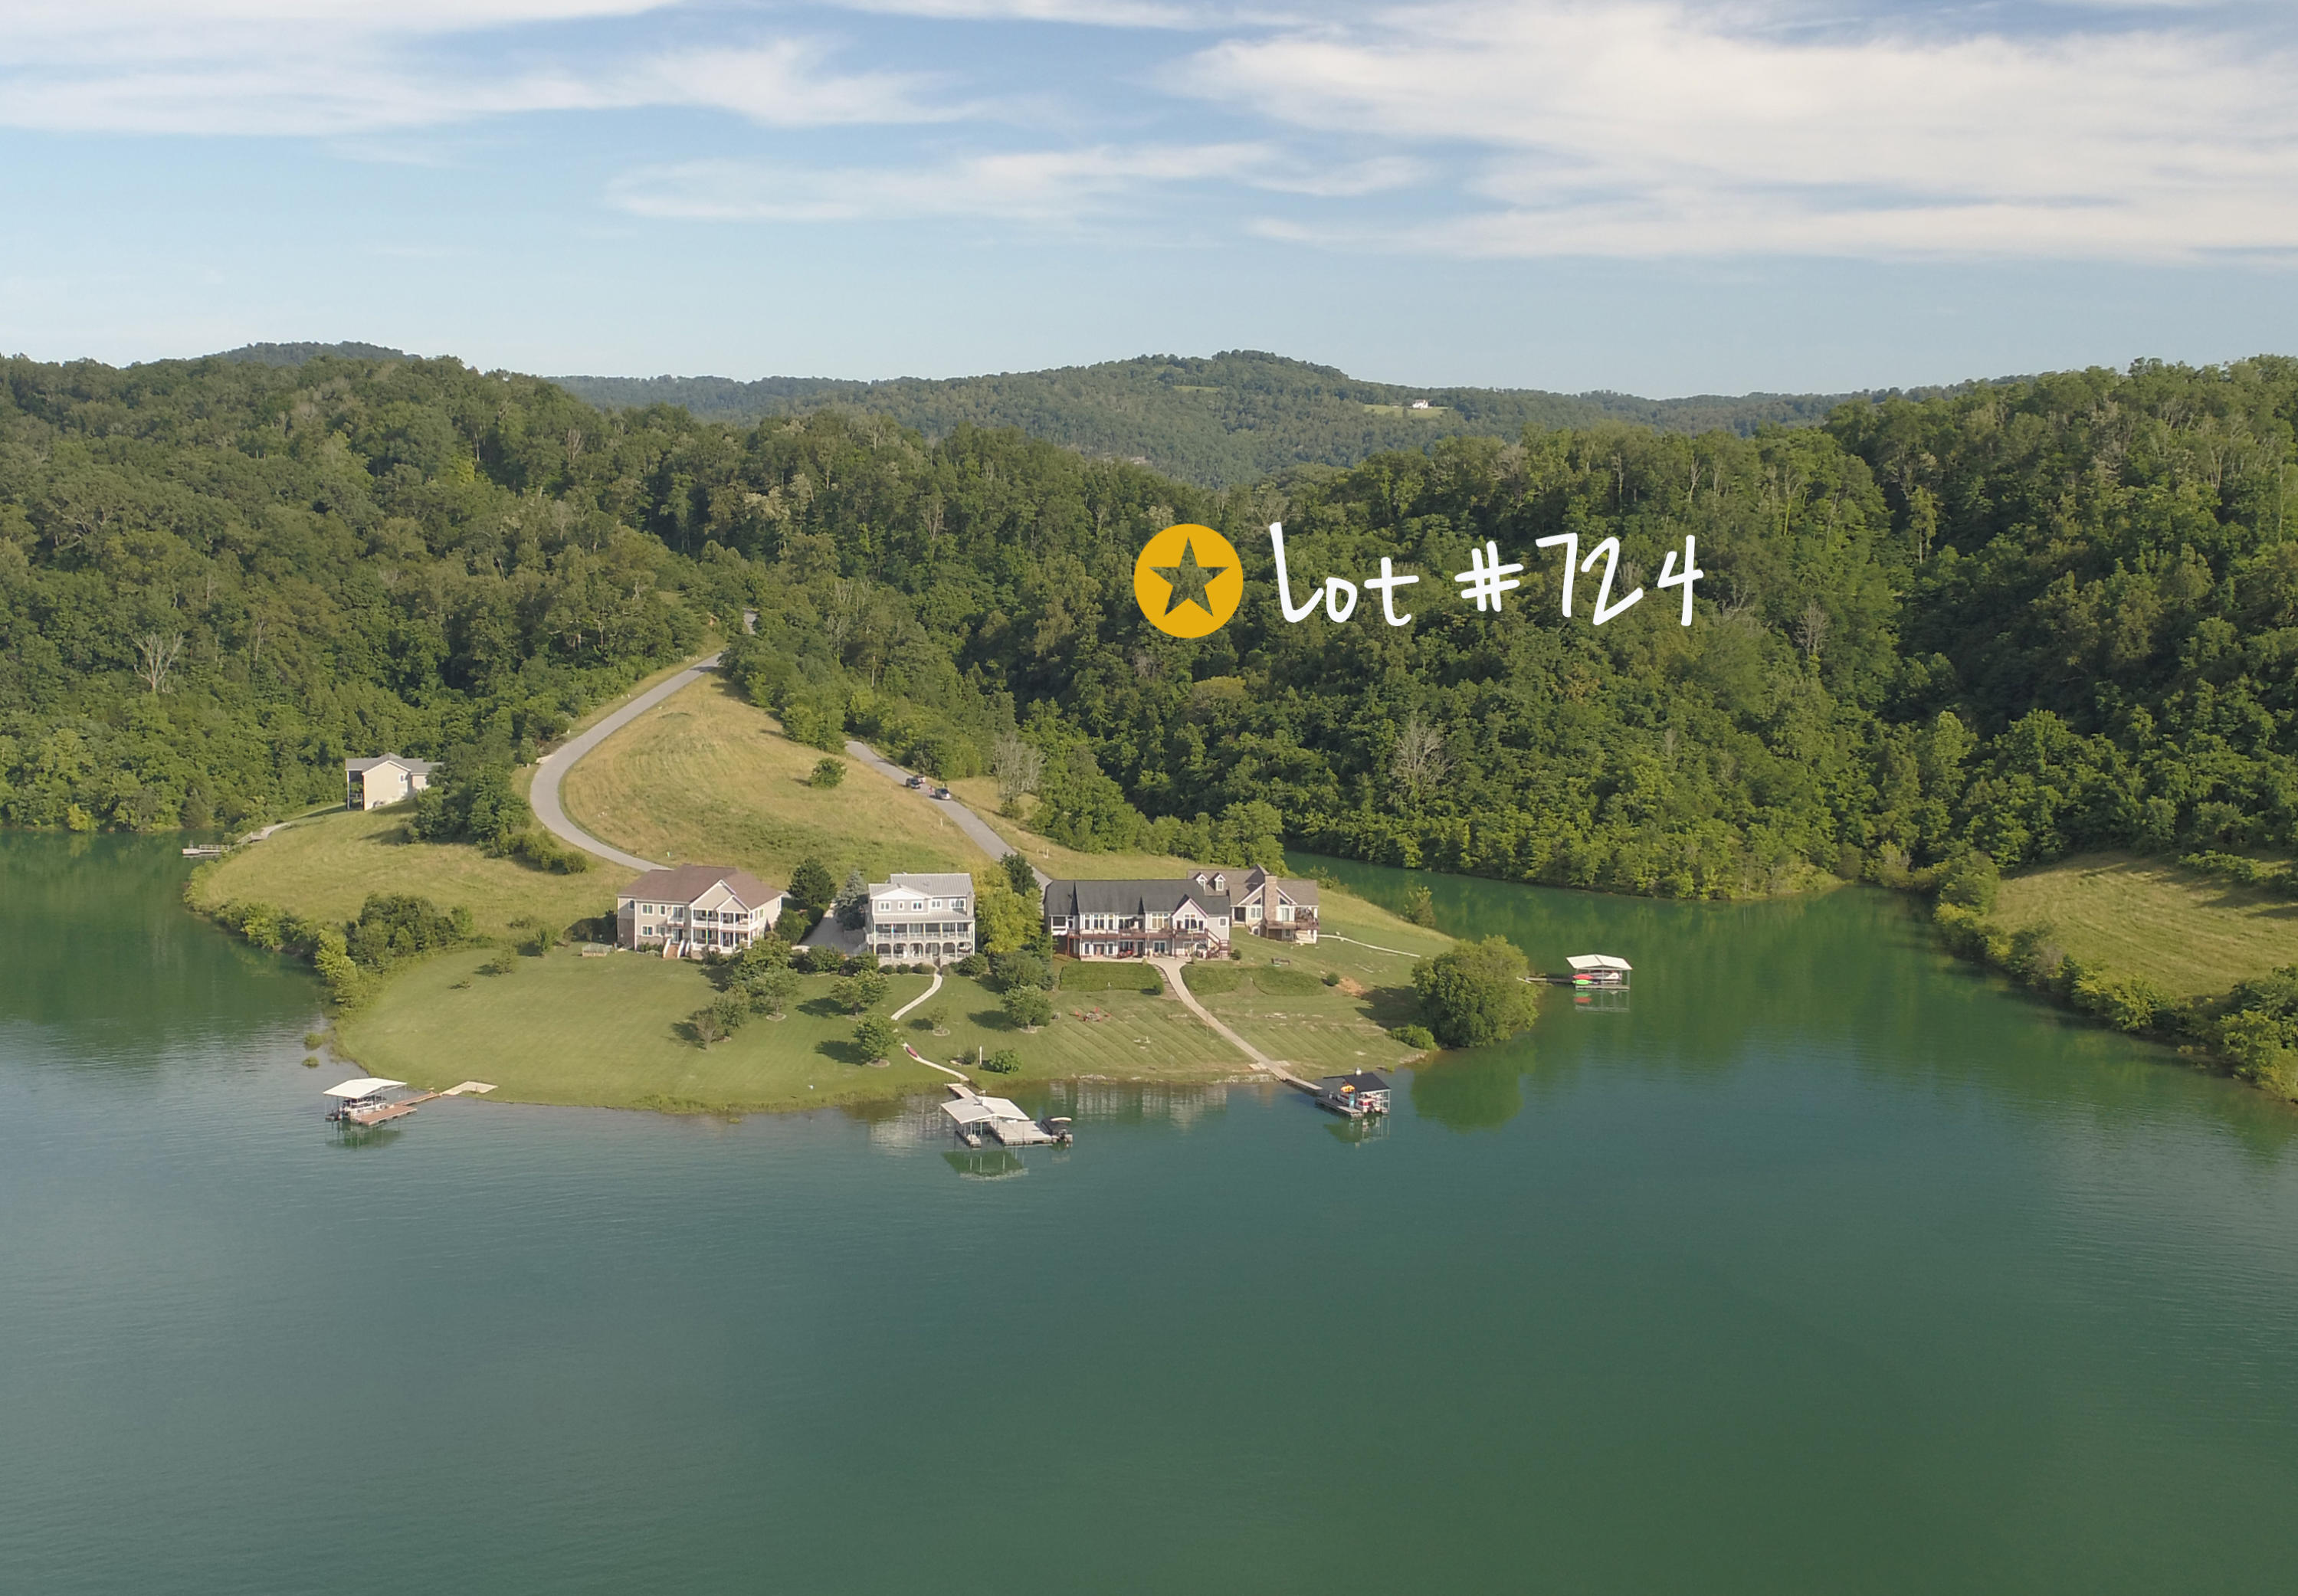 Lot 724 Russell Br Rd: